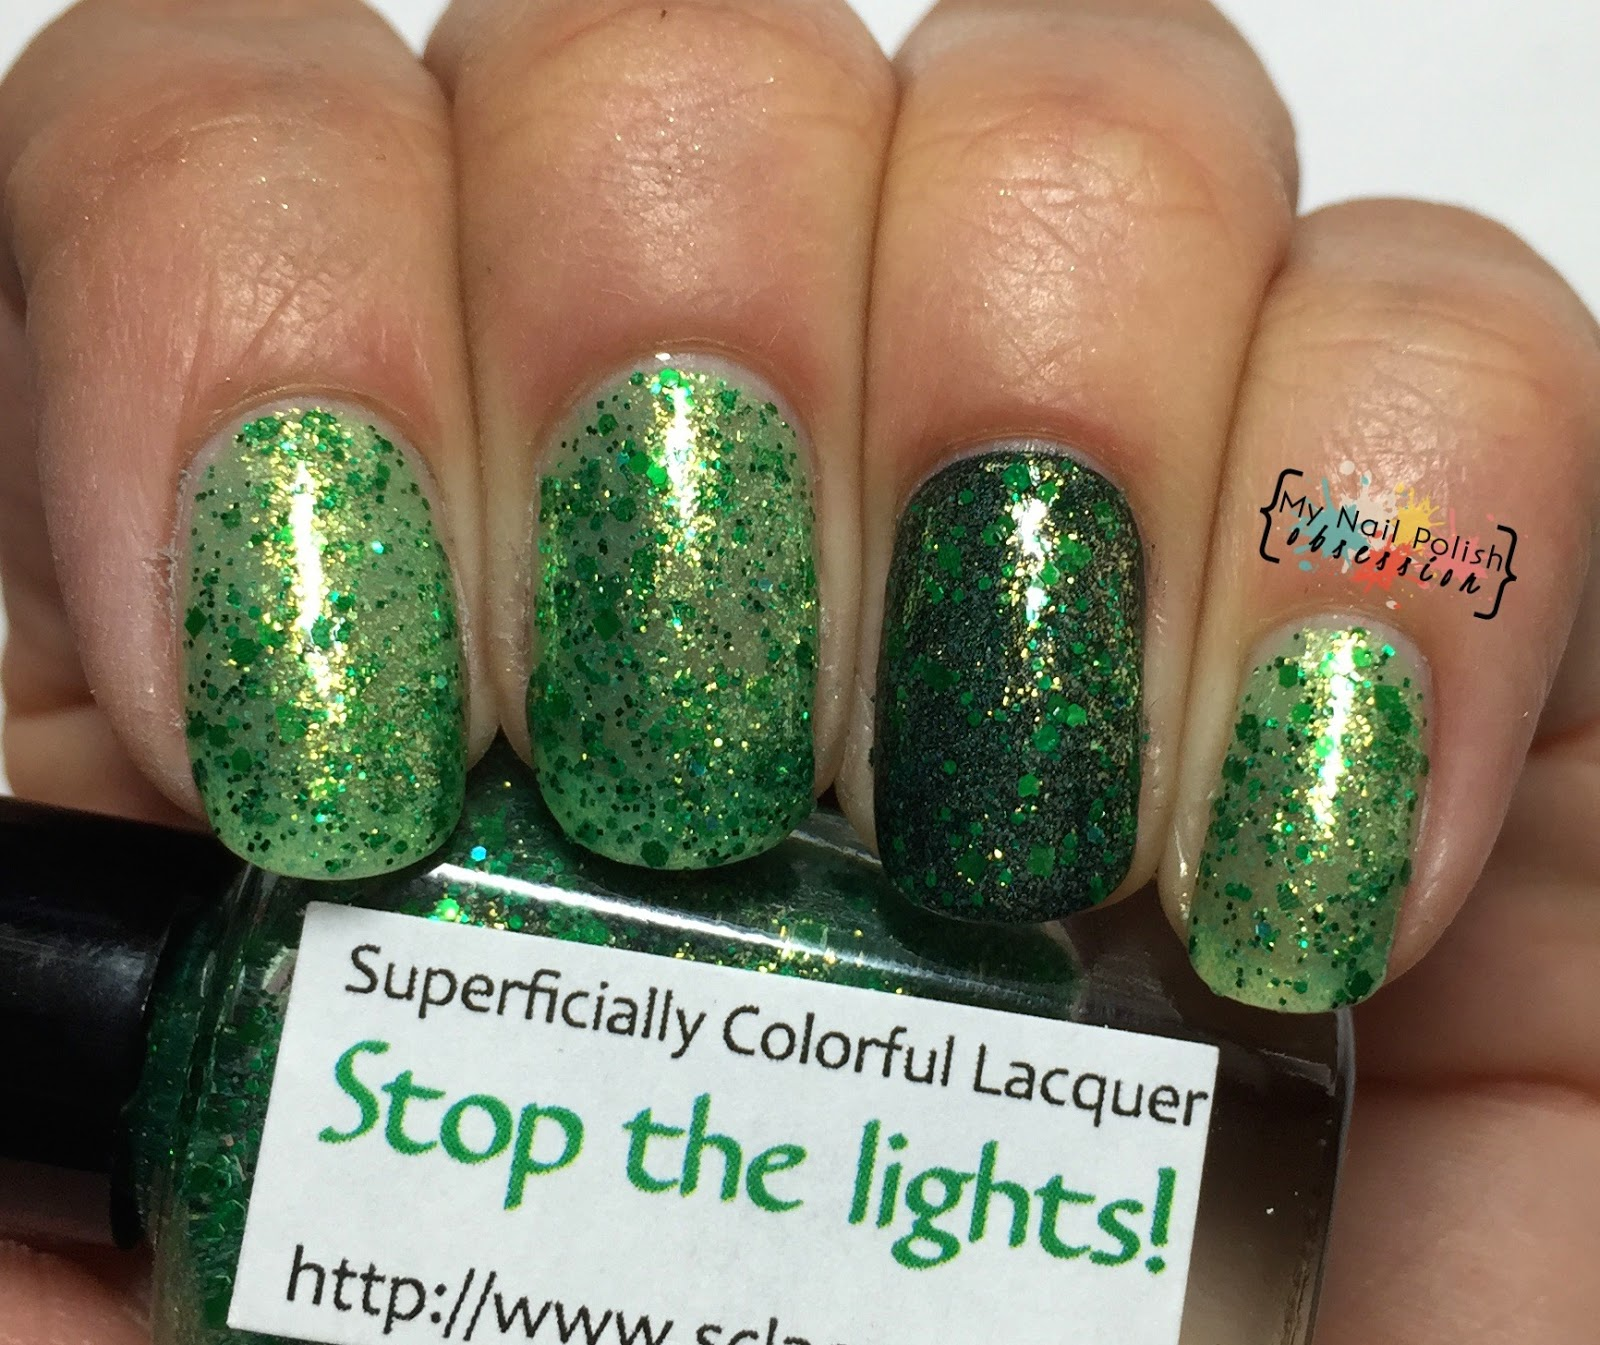 Superficially Colorful Lacquer Stop the Lights